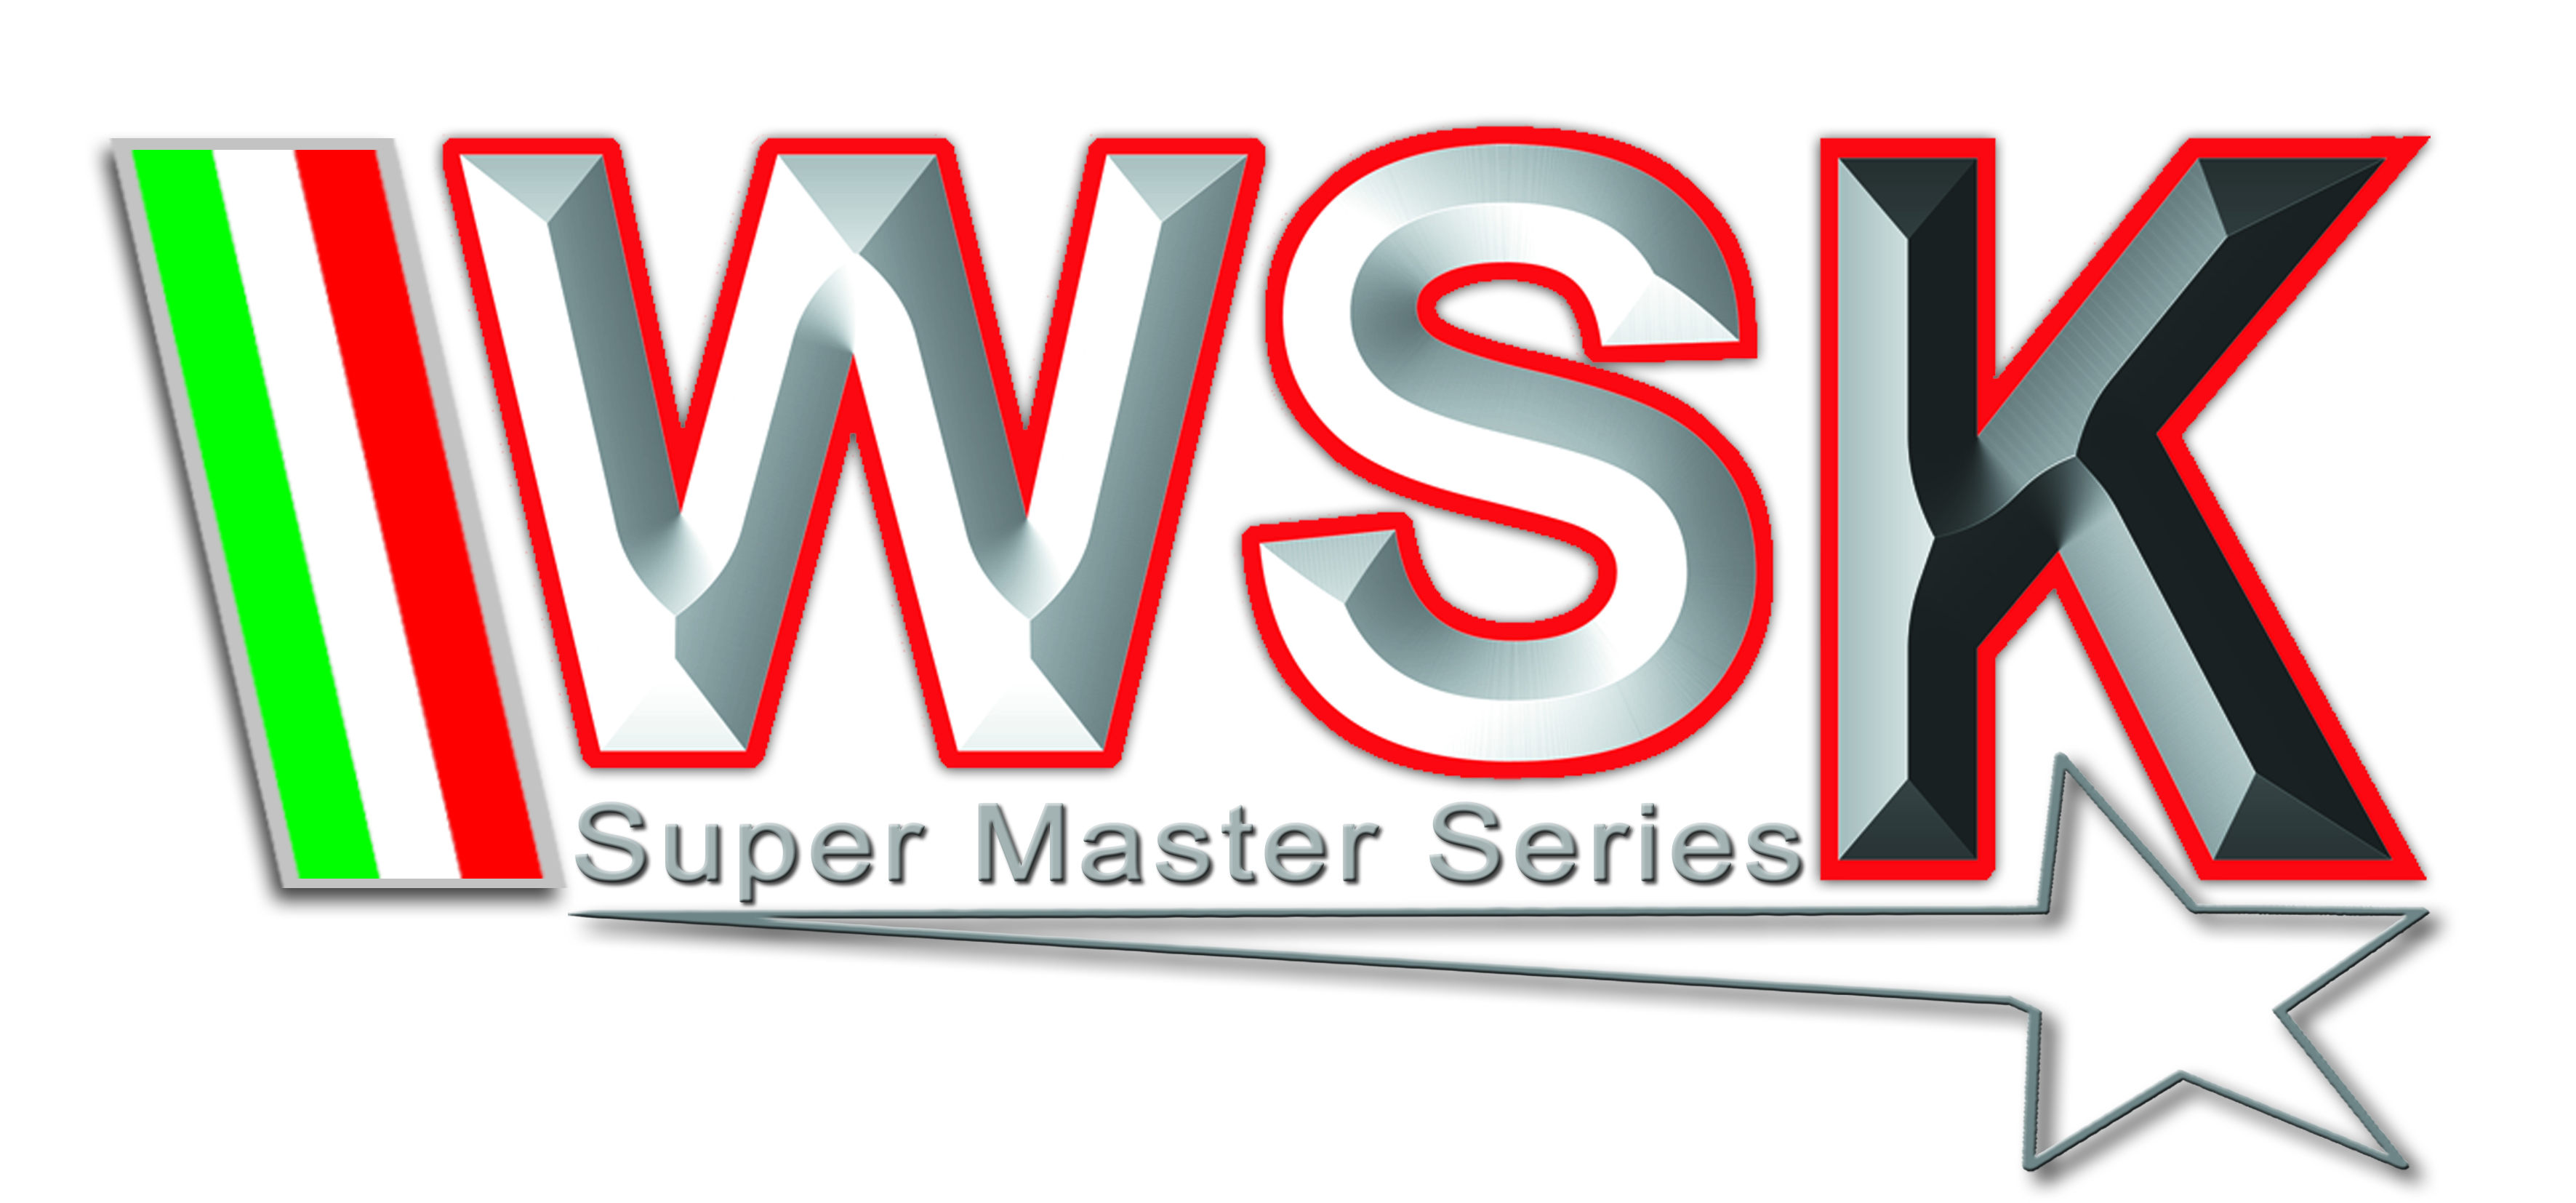 WSK Super Master Series website